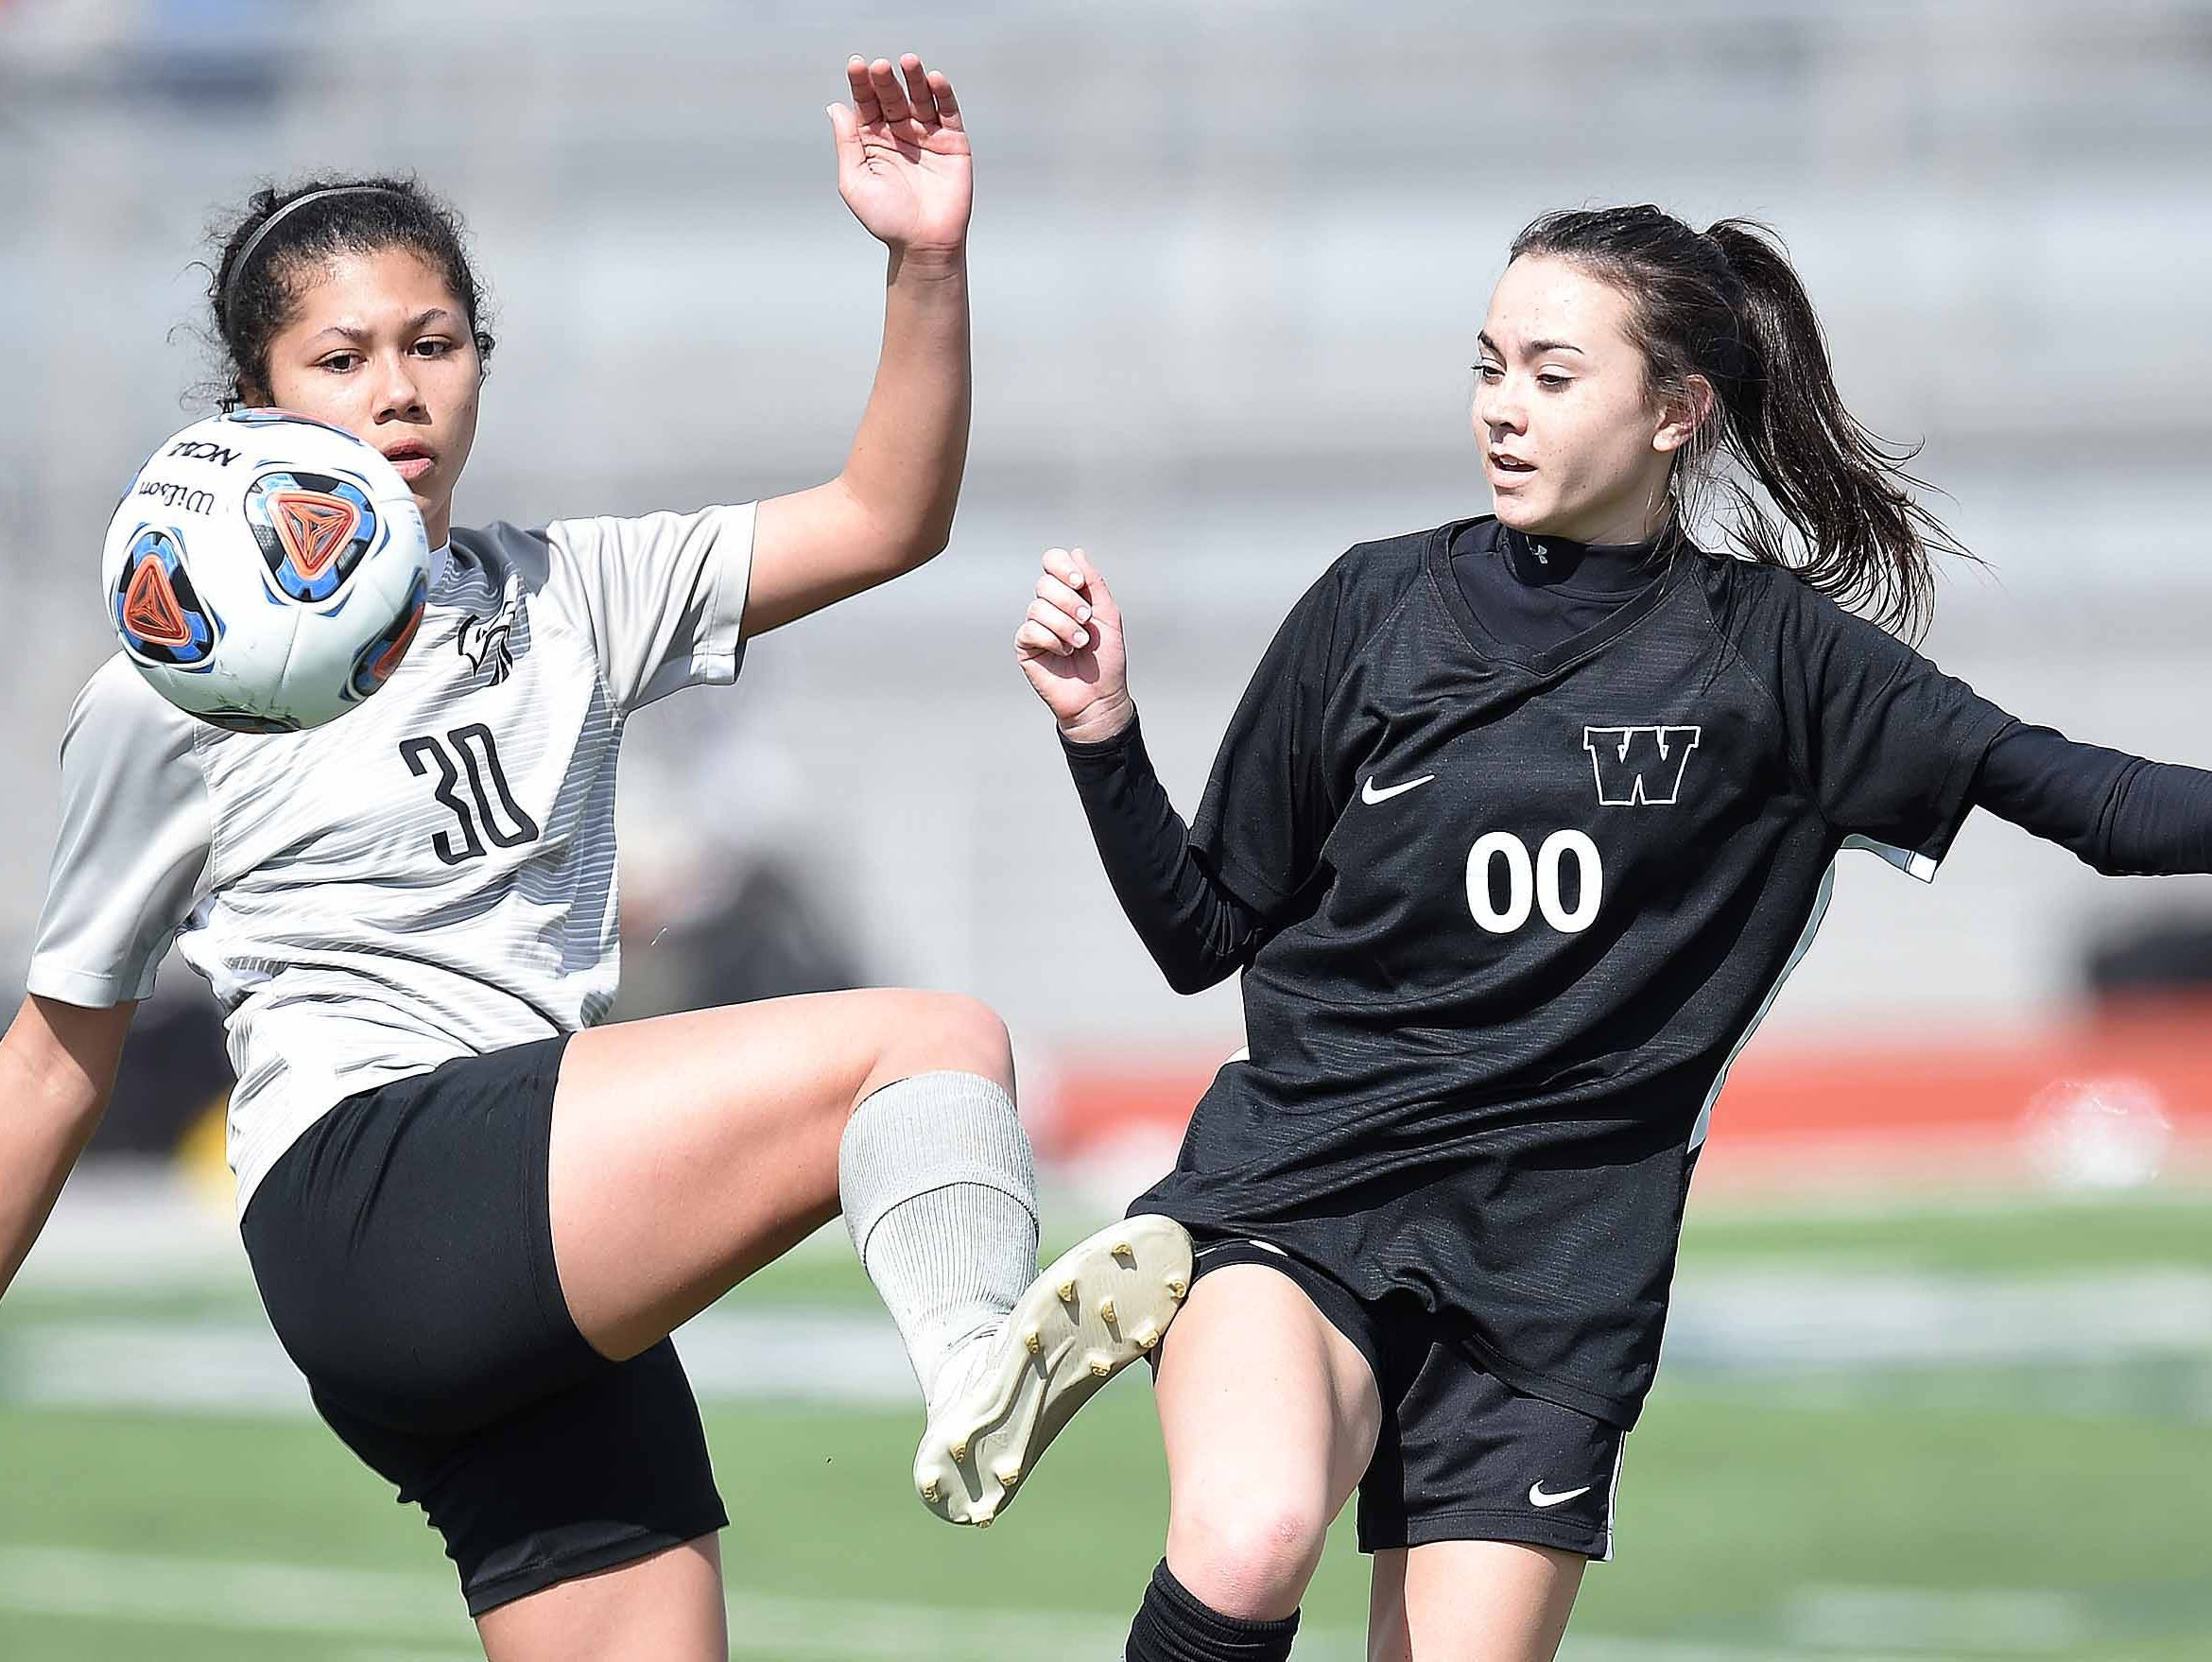 Florence's Shaelynn Quick (30) and West Lauderdale's Mikaela Morrison (00) compete for a ball at midfield in the Class 4A state championship in the MHSAA BlueCross Blue Shield of Mississippi Soccer Classic on Saturday, February 9, 2019, at Ridgeland High School in Ridgeland, Miss.